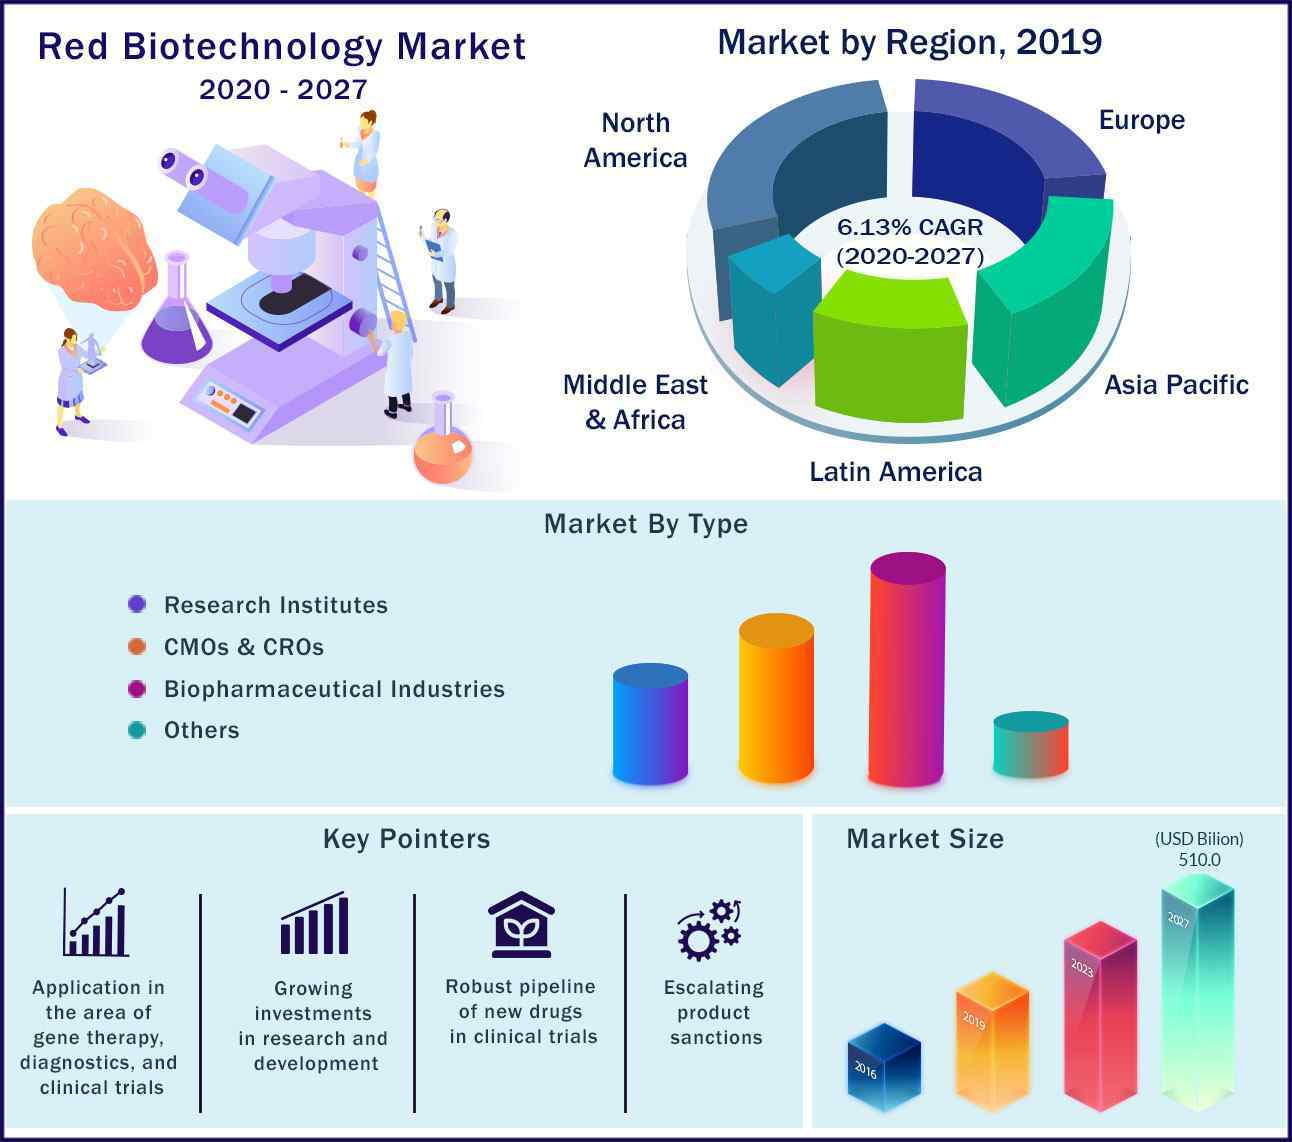 Global Red Biotechnology Market 2020 to 2027